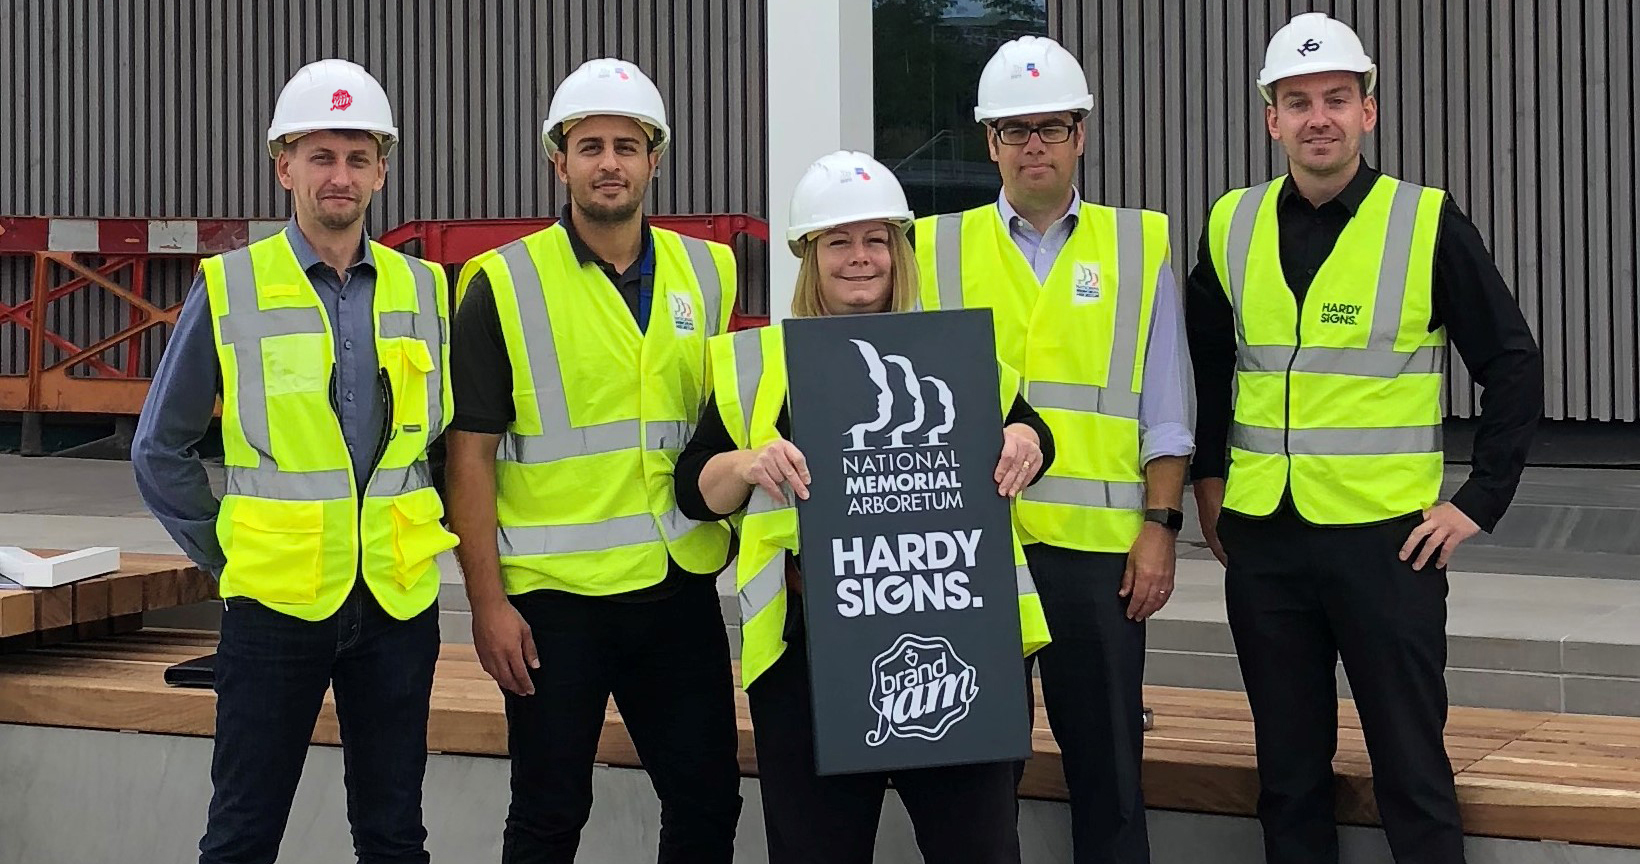 Brand Jam, Hardy Signs and the National Memorial Arboretum will work together on the signage and way finding solutions for Aspects